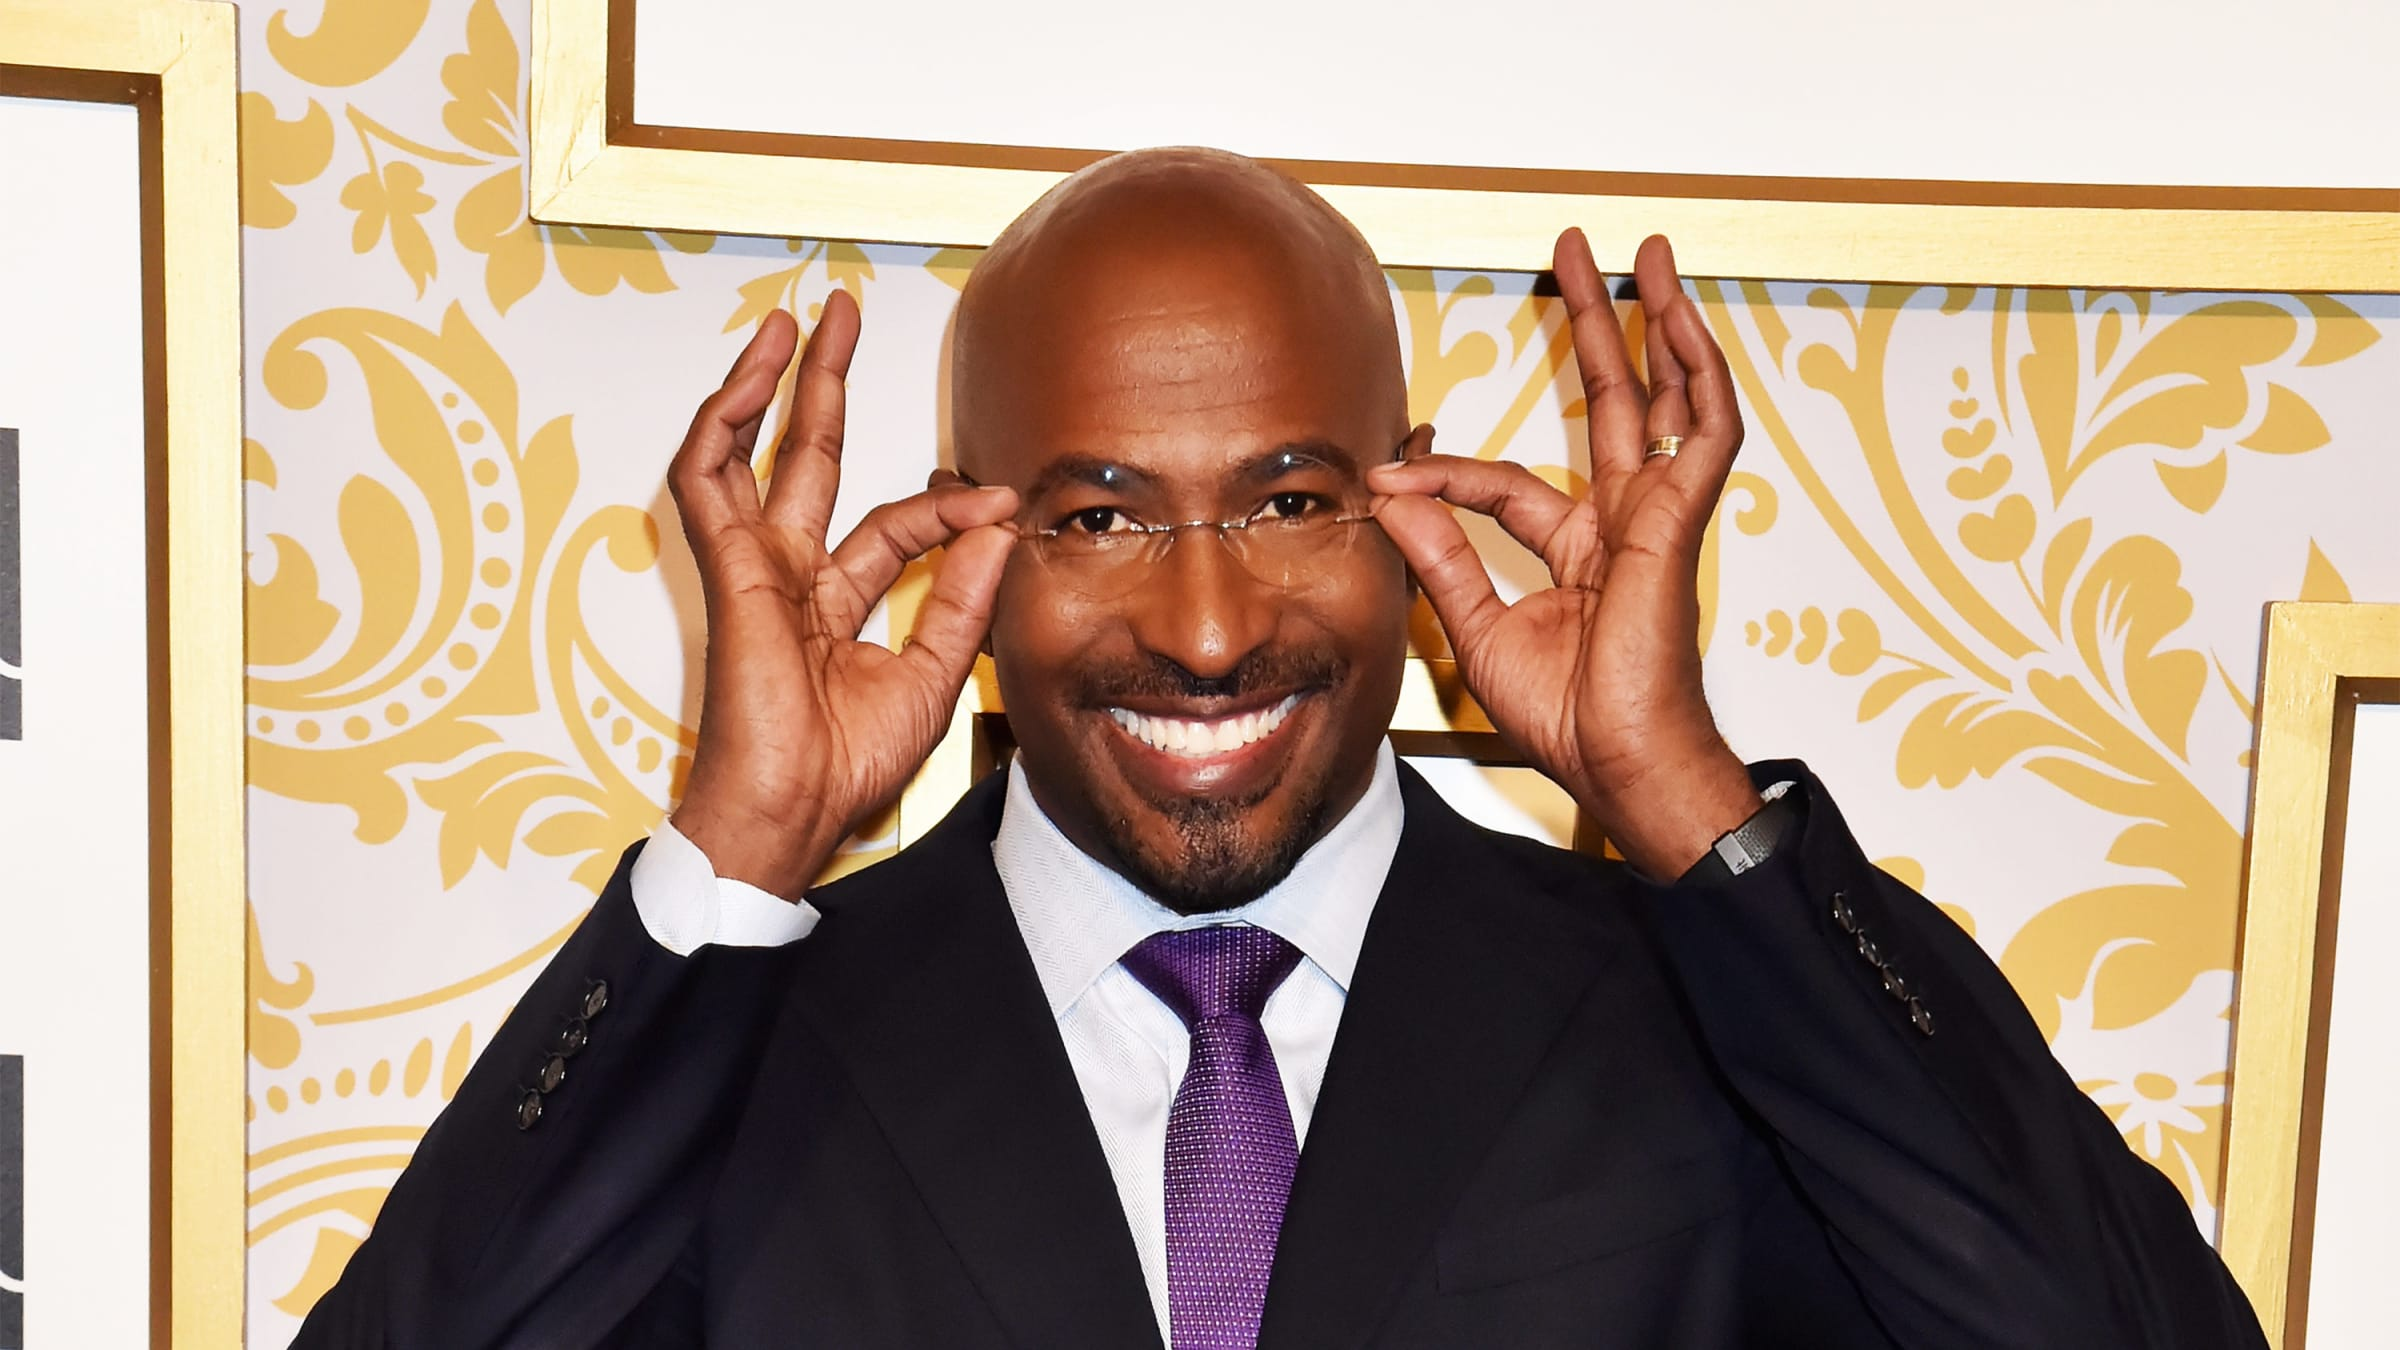 CNN's Van Jones Is Not Going to Apologize for Complimenting Trump: 'I'm Proud of It'